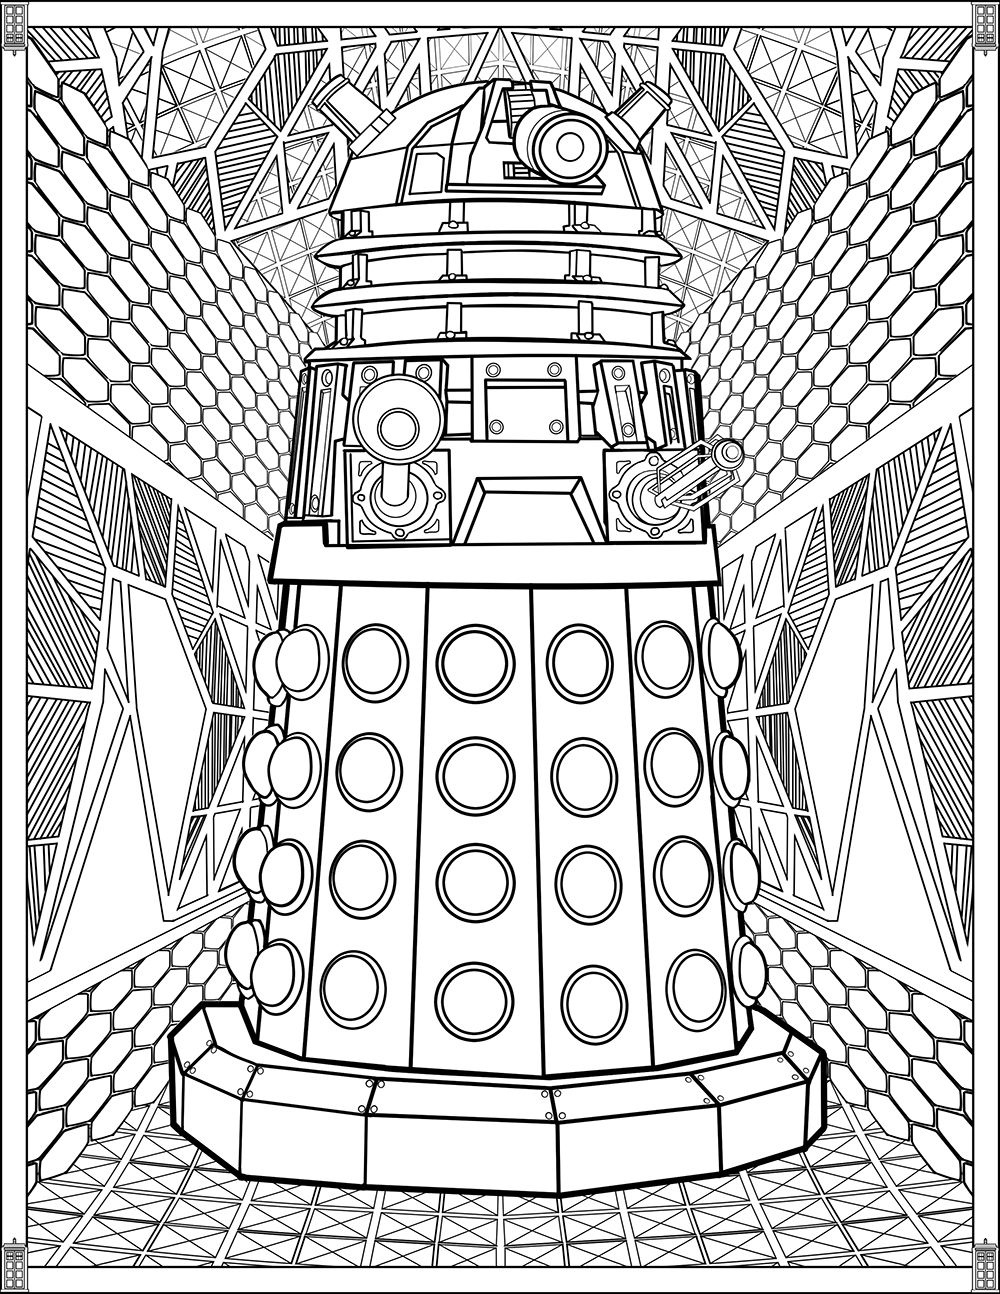 coloring printables doctor who wibbly wobbly timey wimey coloring pages printables coloring